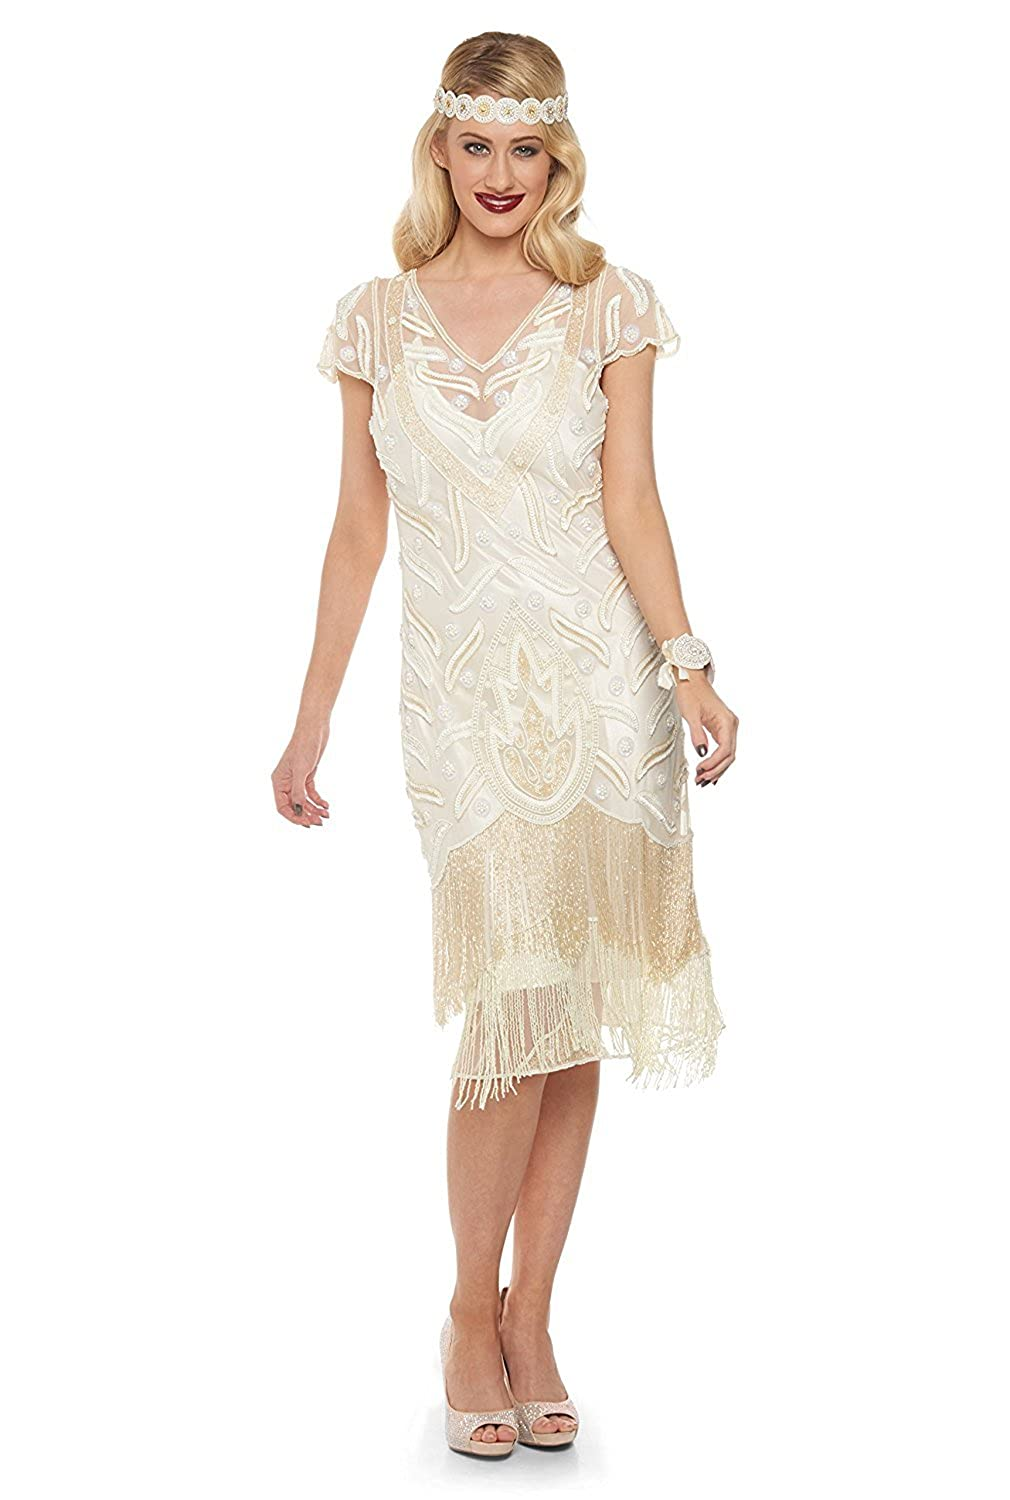 1920s Style Dresses, Flapper Dresses Vegas Vintage Inspired Fringe Dress in Cream £139.00 AT vintagedancer.com